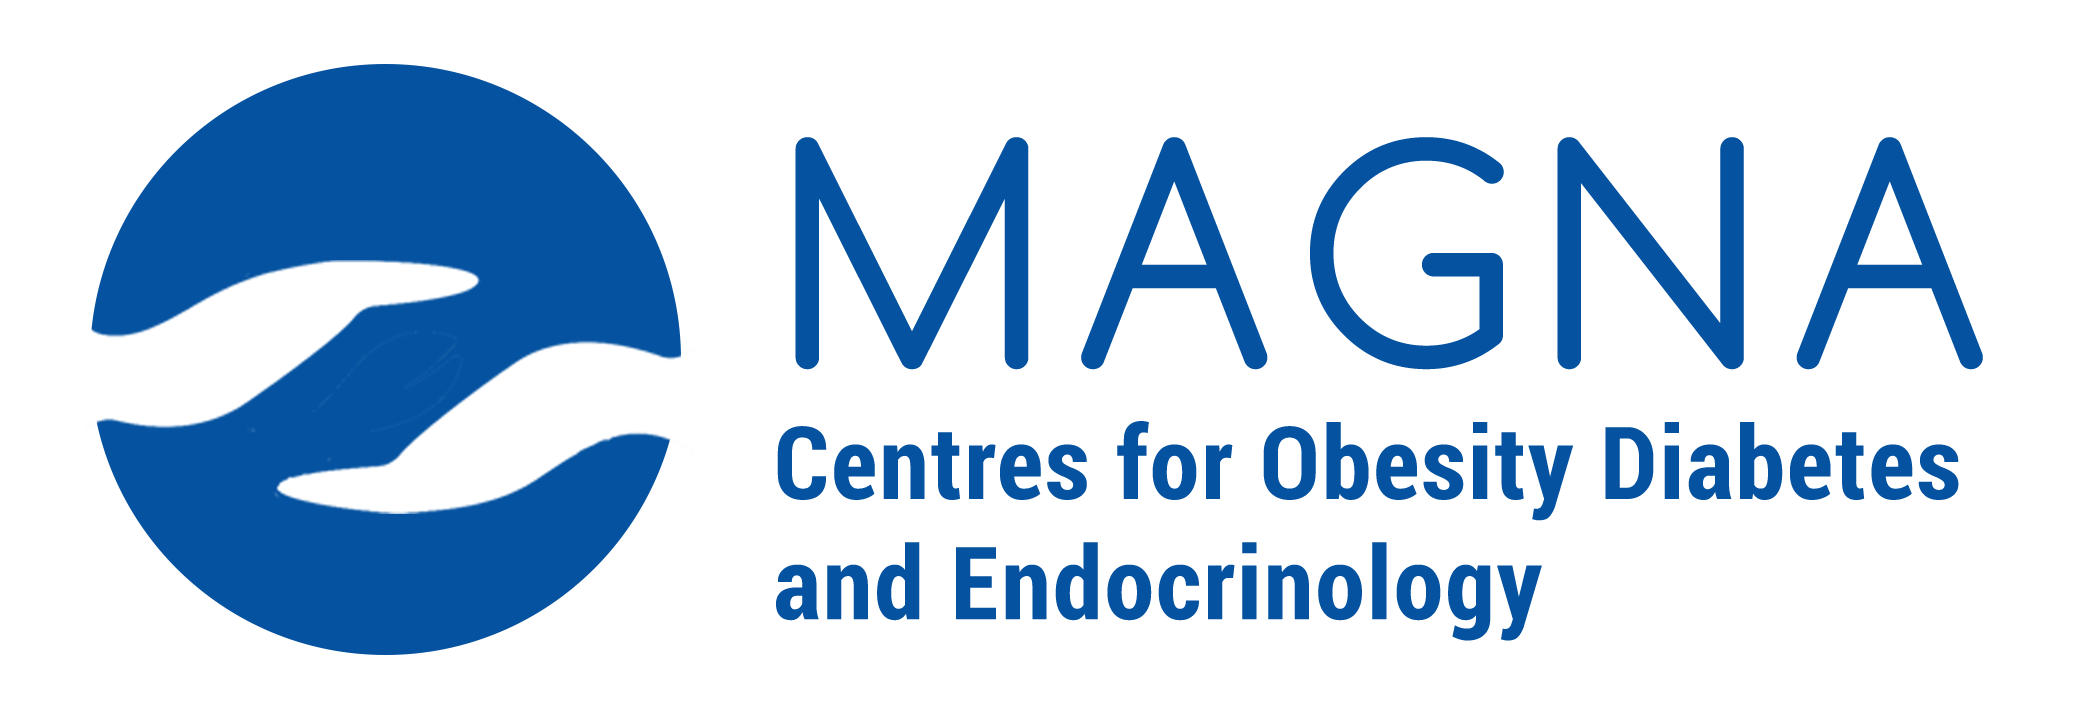 Magna Centres for Obesity,Diabetes & Endocrinology | Lybrate.com